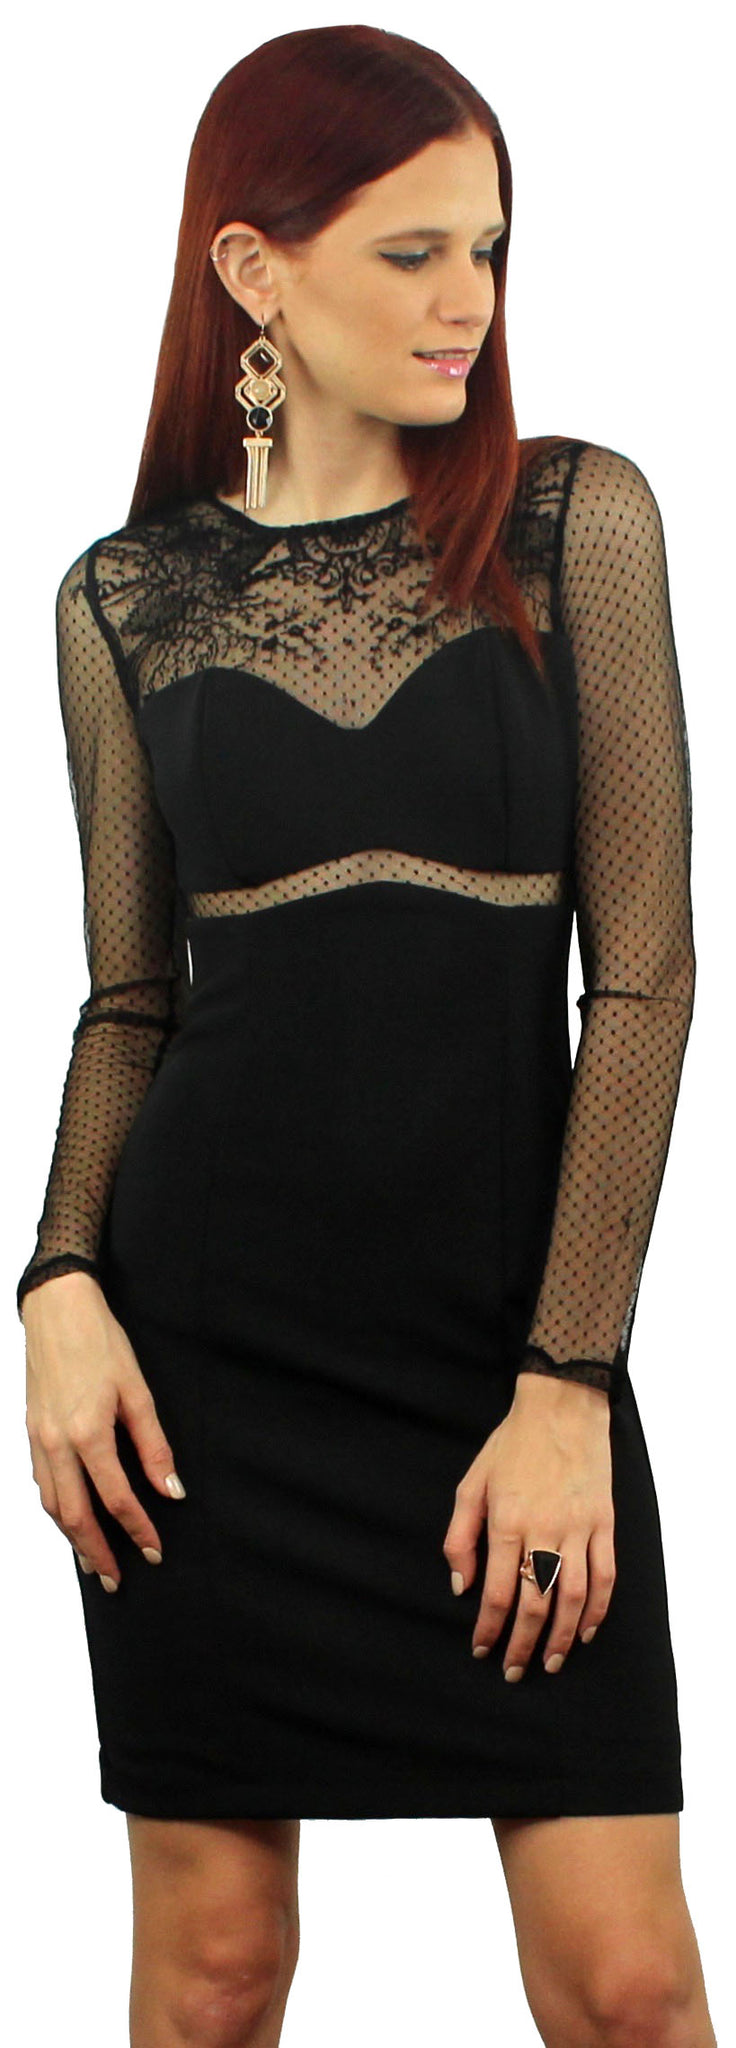 Myriad of Possibilities Black Dress